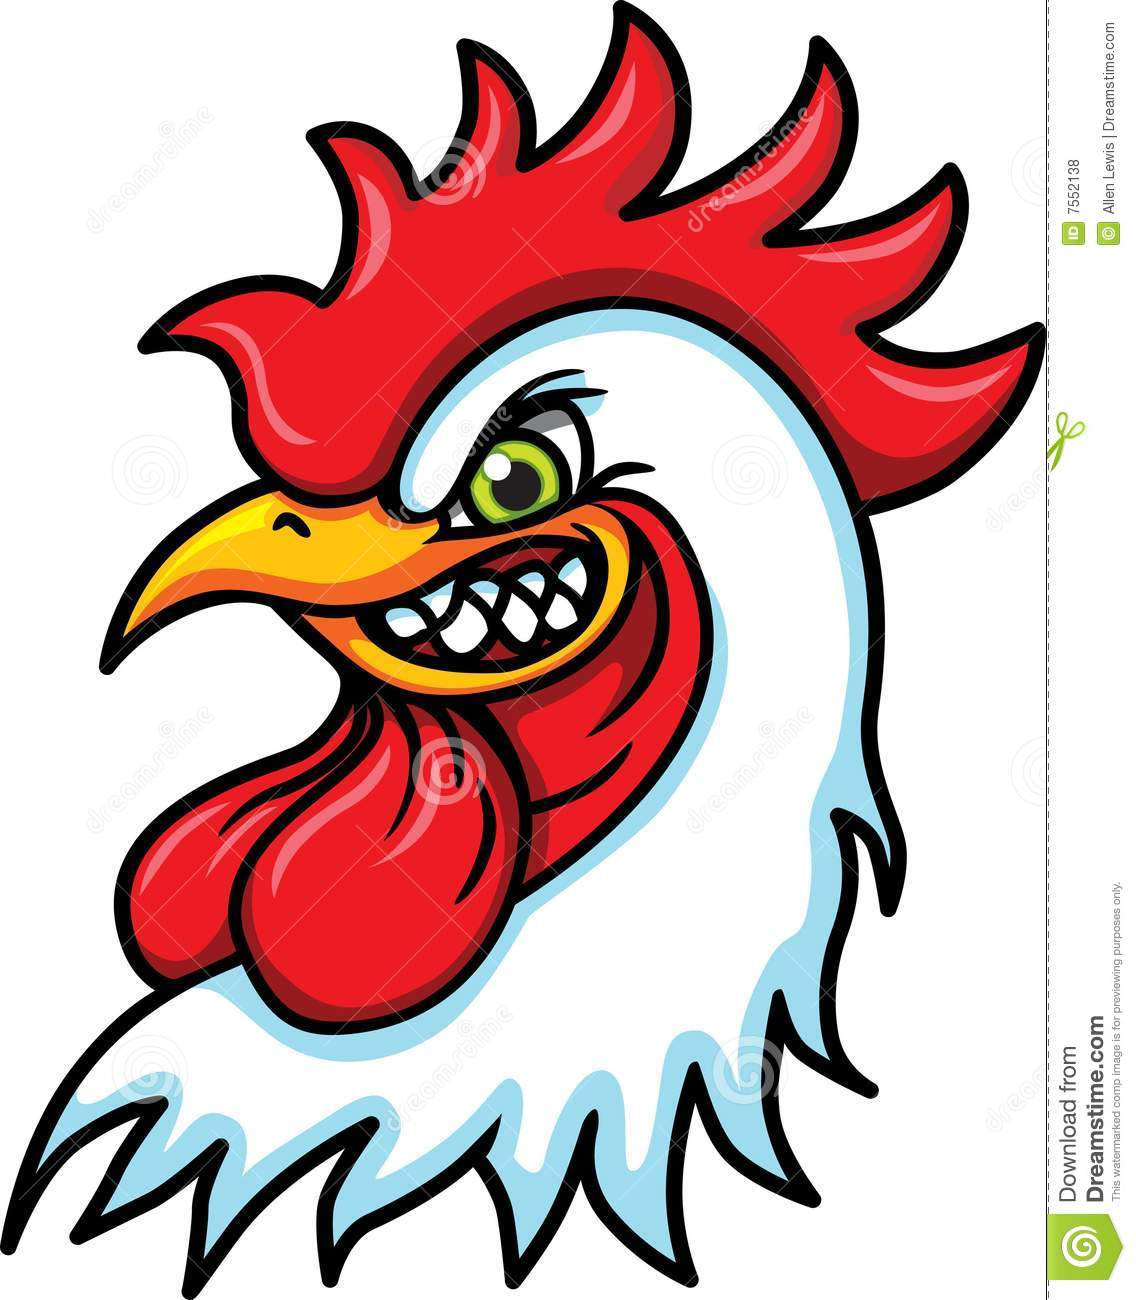 rooster royalty free stock photos image 7552138 angry bird clipart black and white angry birds clip art images black and white